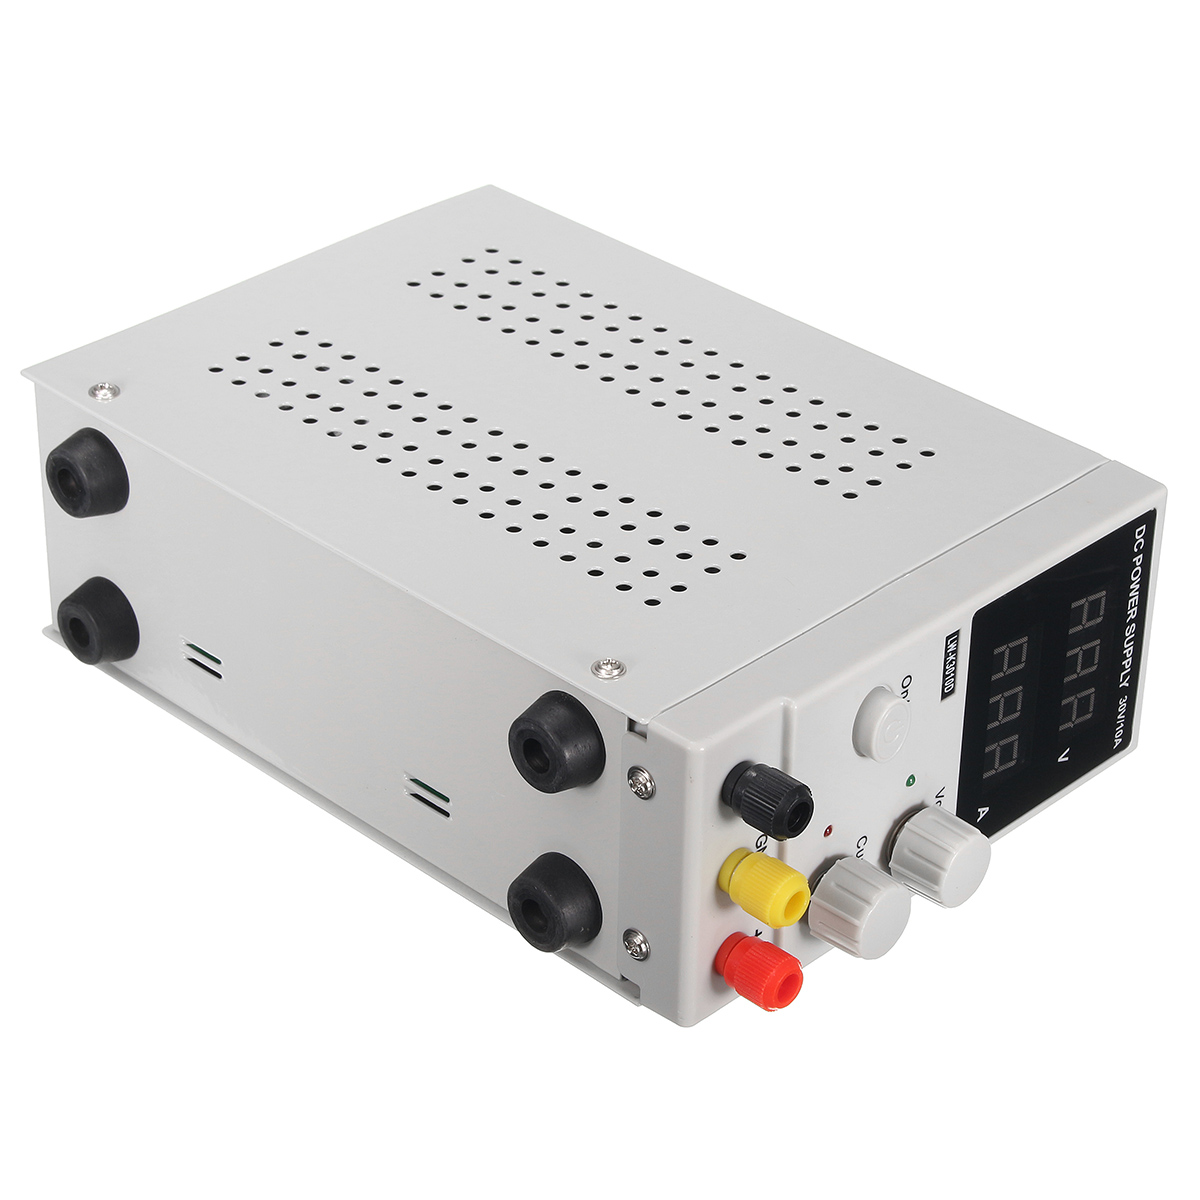 0 10A 0 30V 220V LCD DC Power Supply Adjustable Precision Variable Digital Lab-in Voltage Regulators/Stabilizers from Home Improvement    3